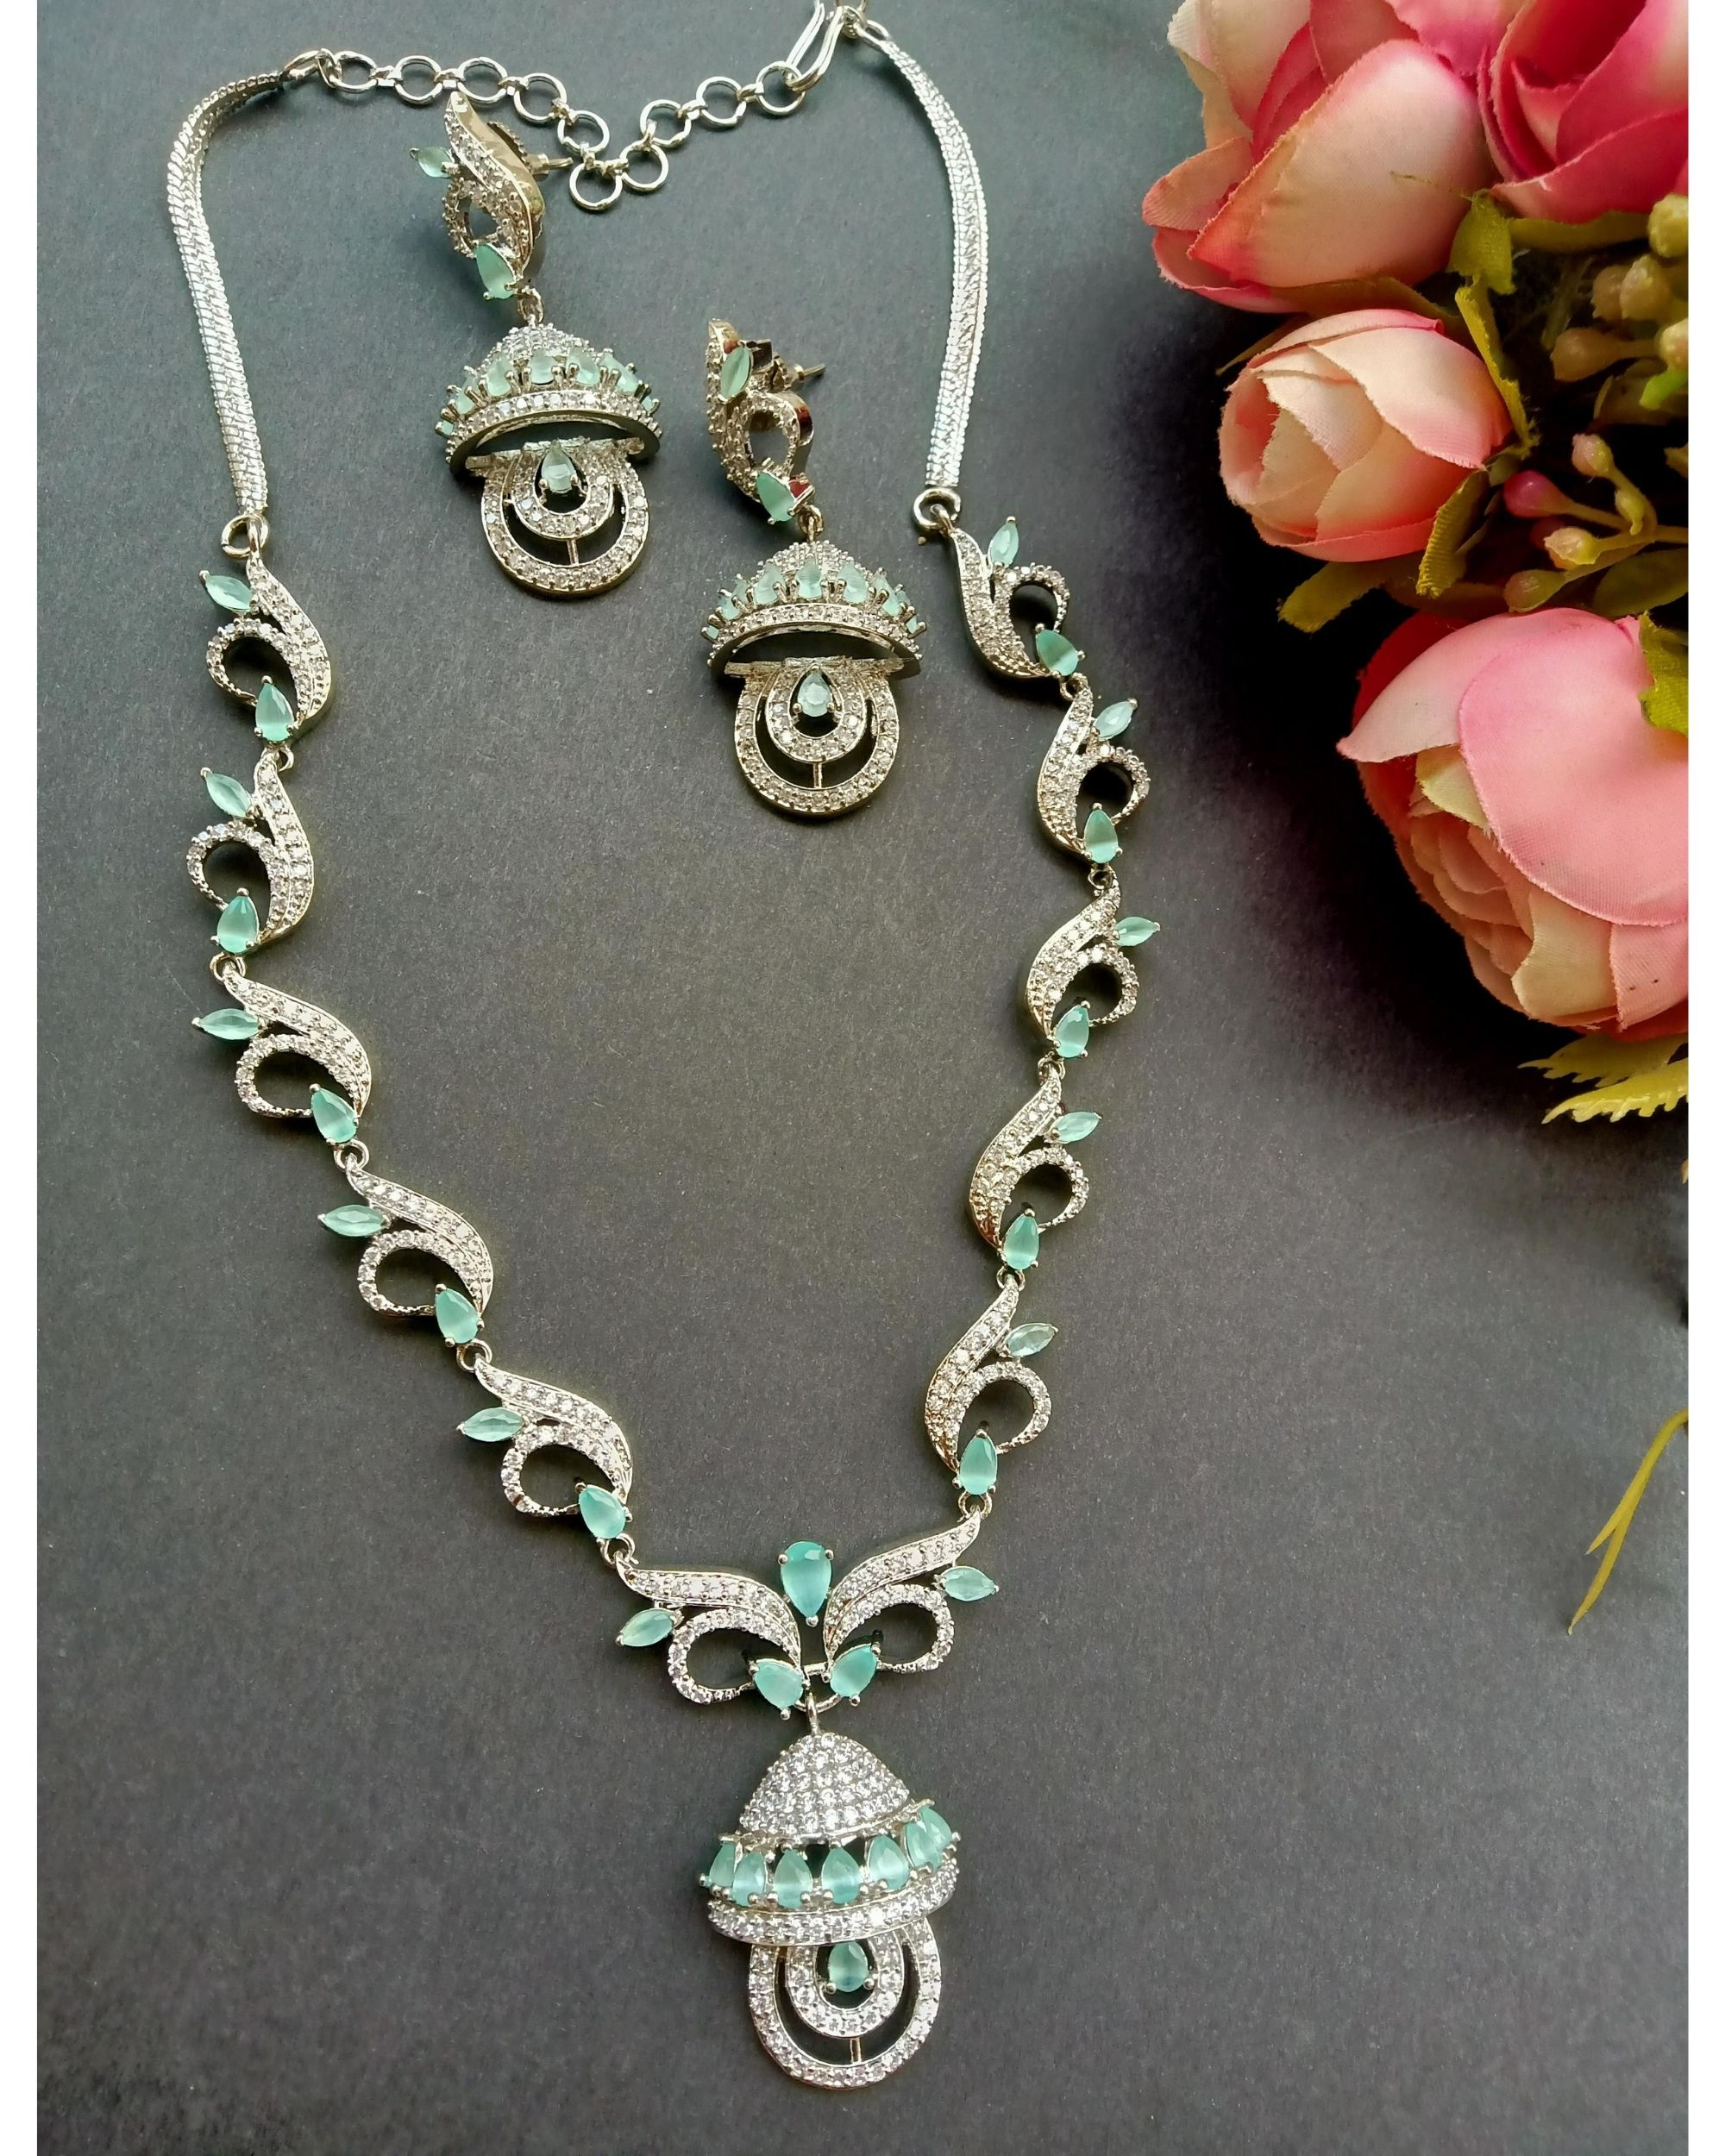 Mint green stone embedded neckpiece with earrings - set of two